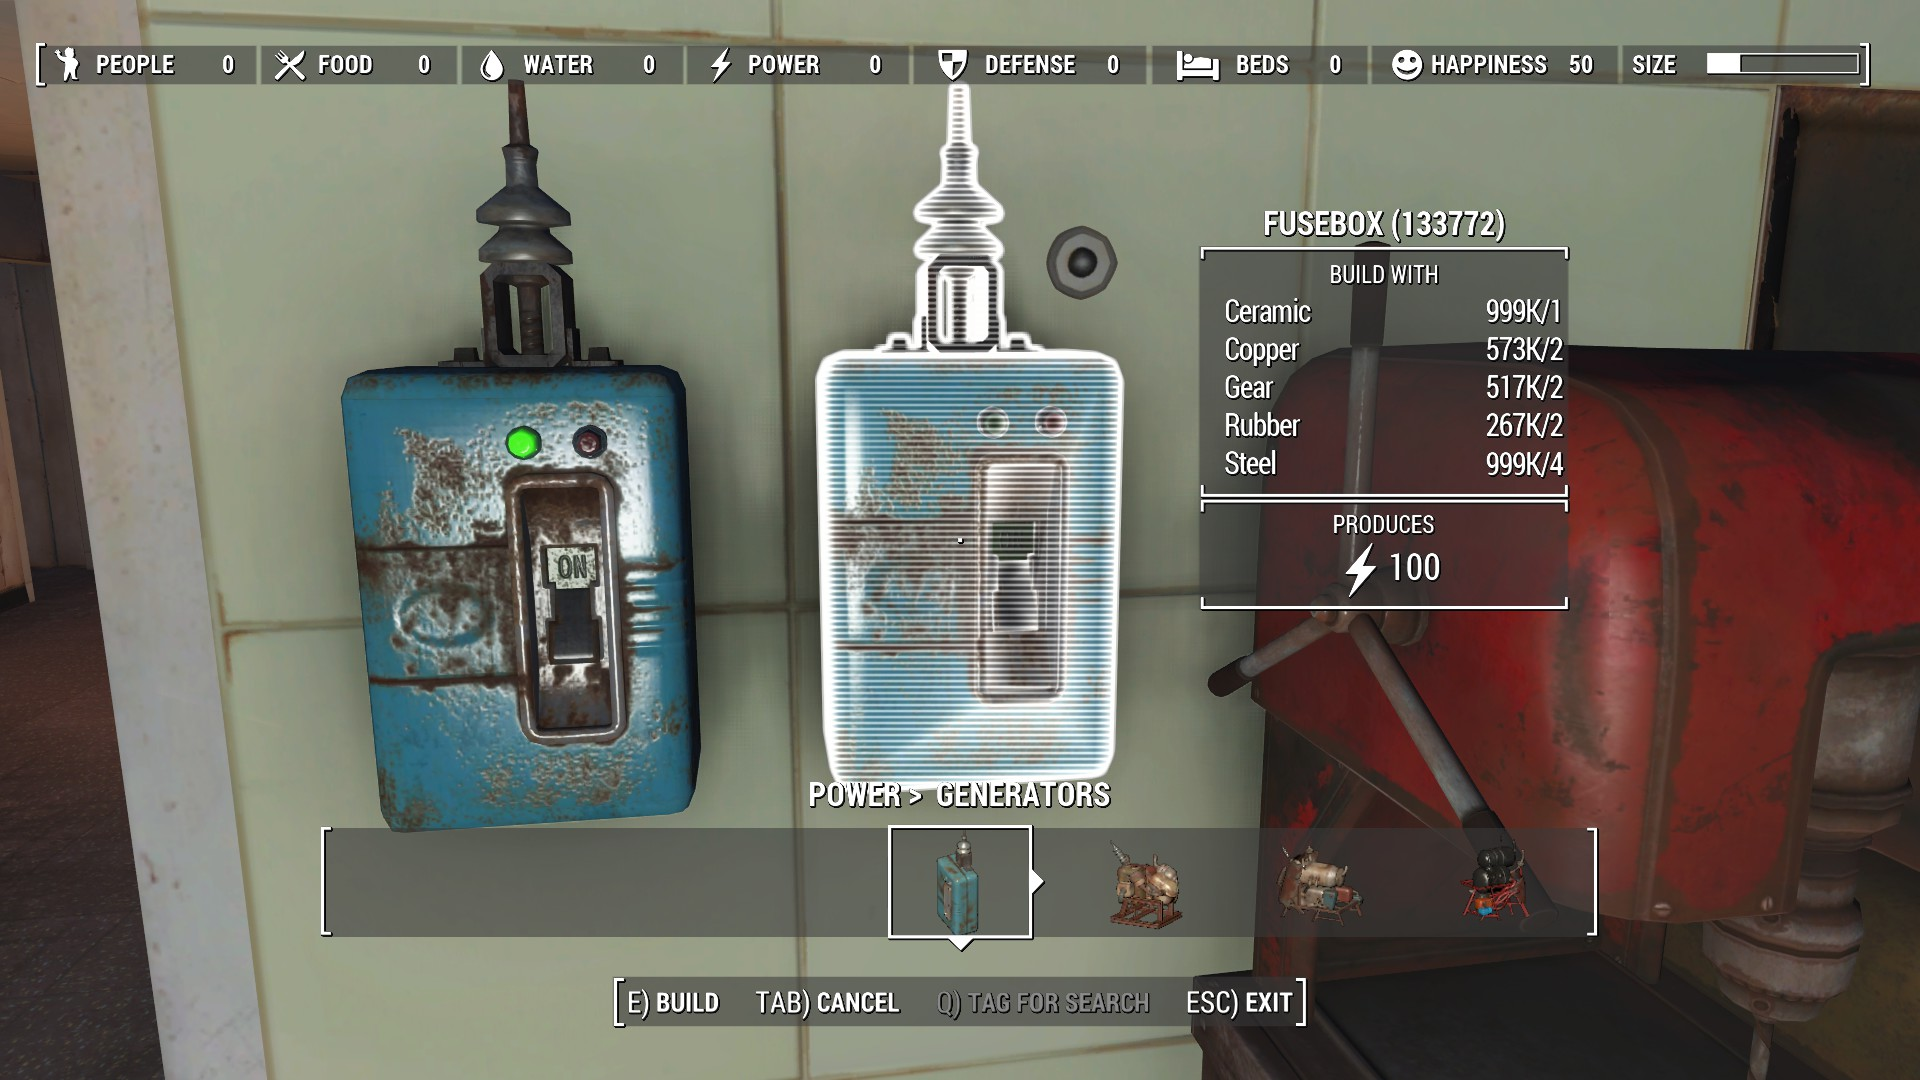 3429 0 1448747560 fallout 4 fuse box id fallout 3 xbox 360 \u2022 wiring diagram database fallout 4 fuse box lid at webbmarketing.co